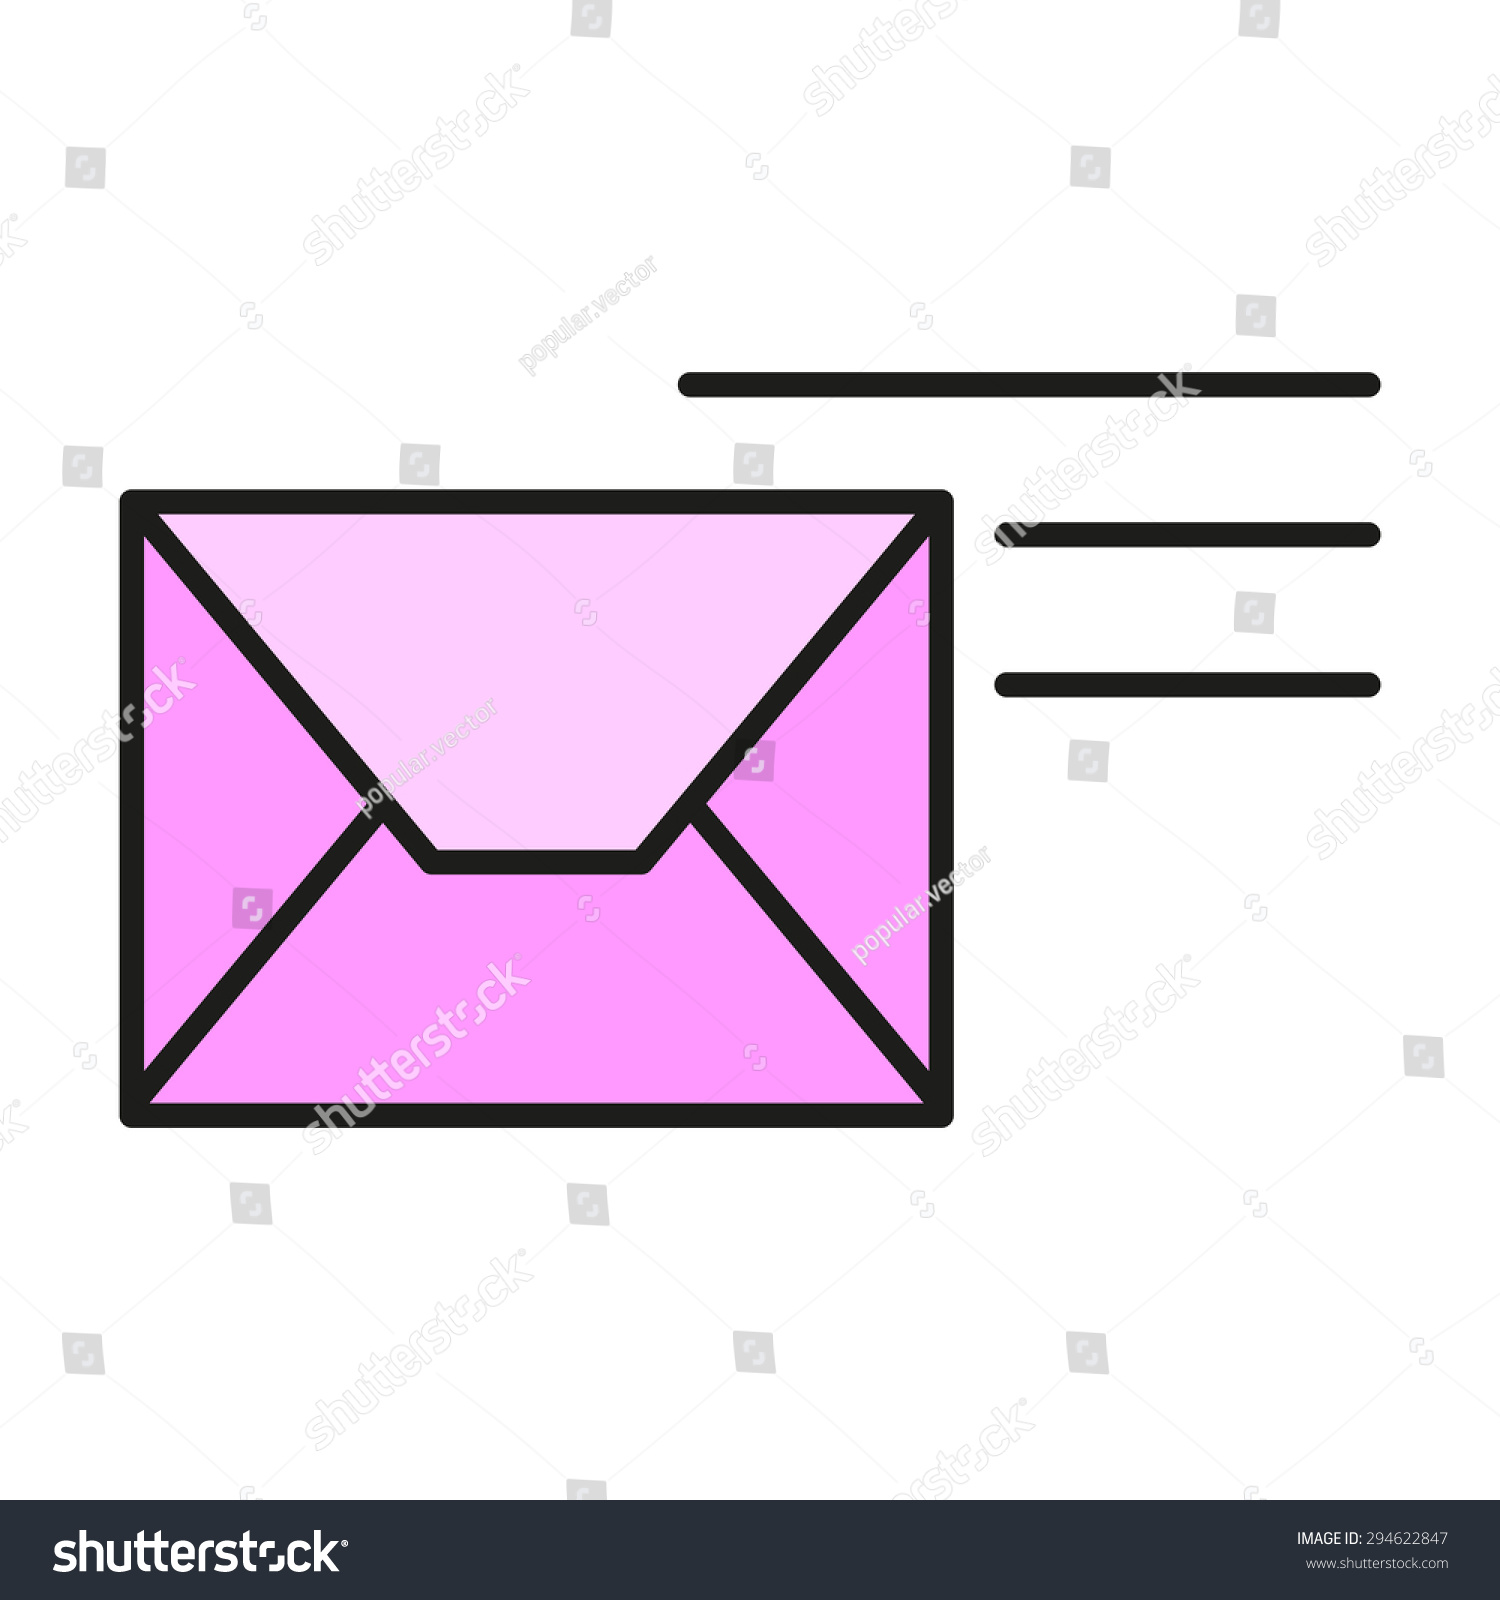 Send Message Letter Email SMS Email Stock Vector 294622847 ...